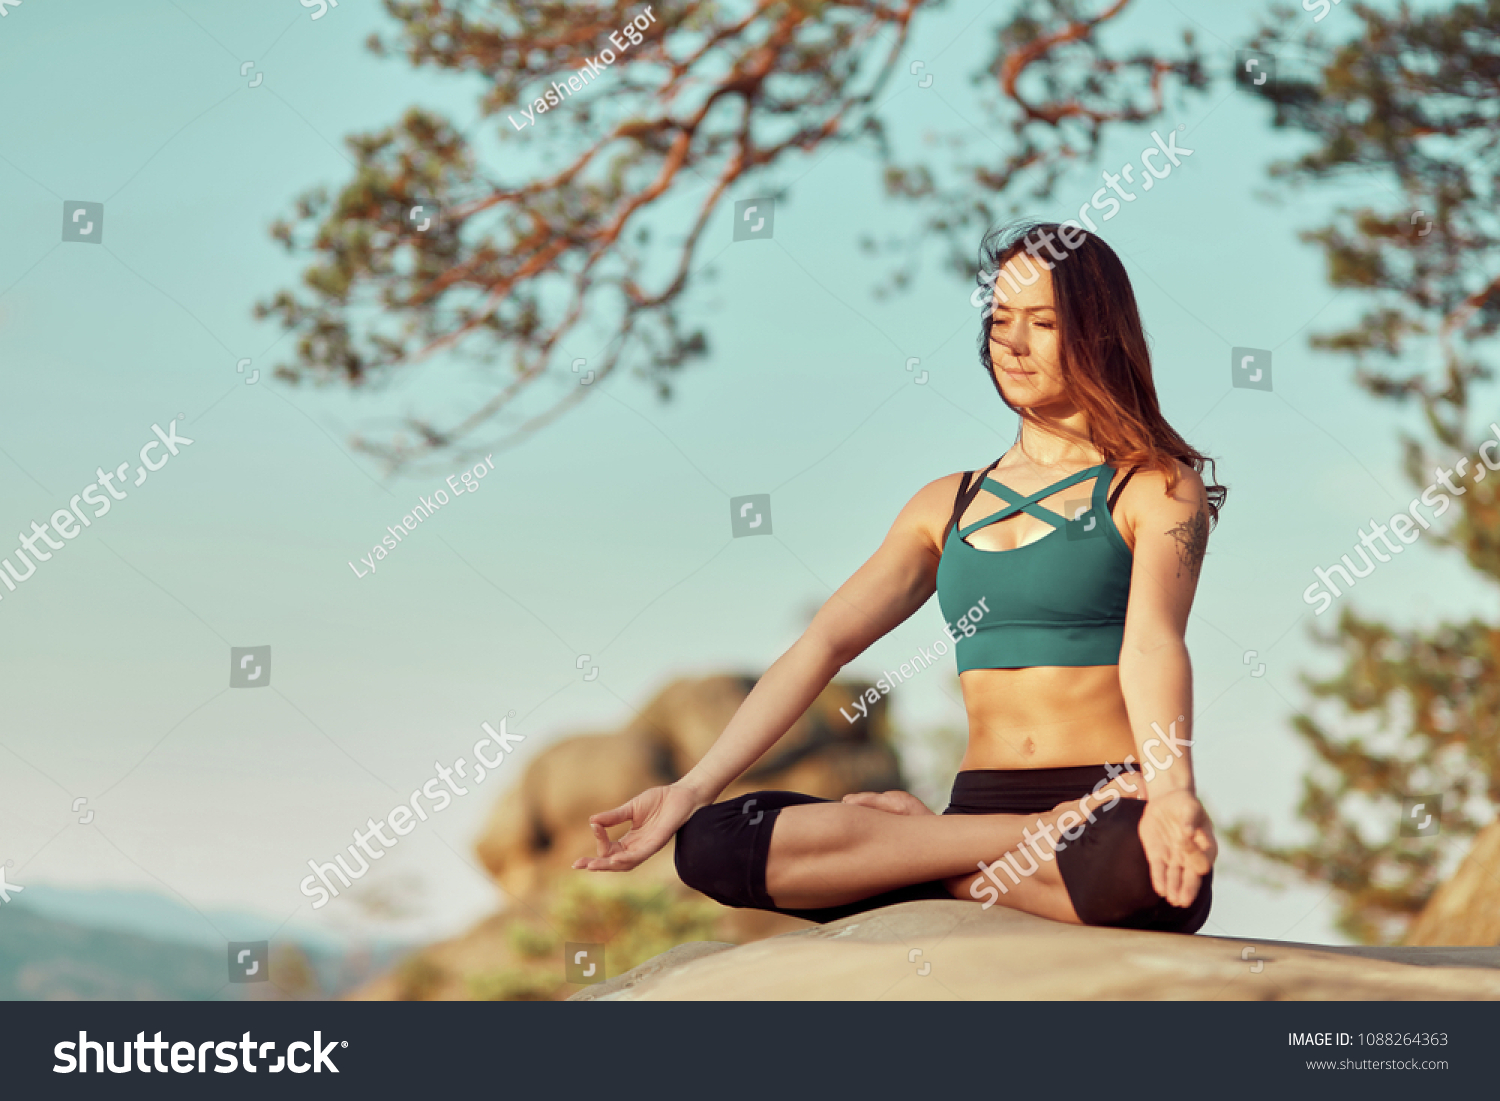 Yoga Woman Yoga Poses Portrait Beautiful Stock Photo Edit Now 1088264363